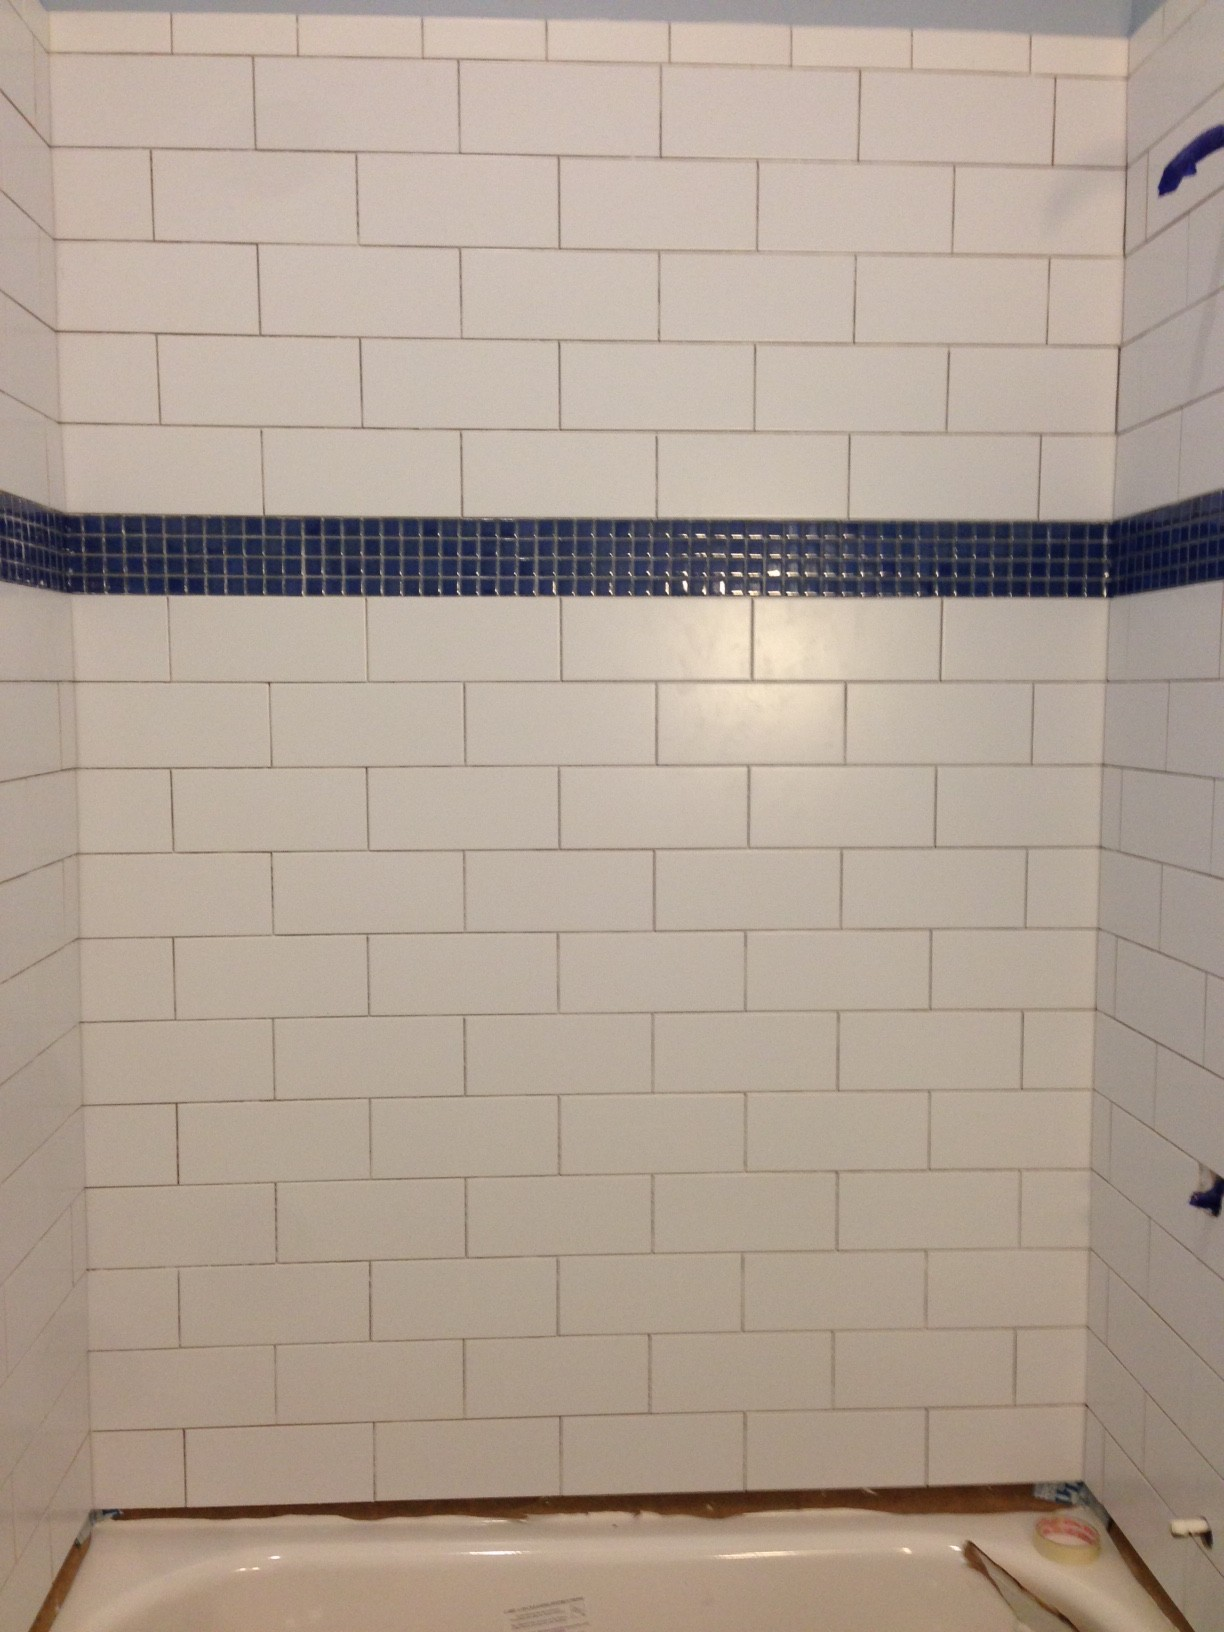 Bathroom How To Finish 1 Gap Between Tub And Tile